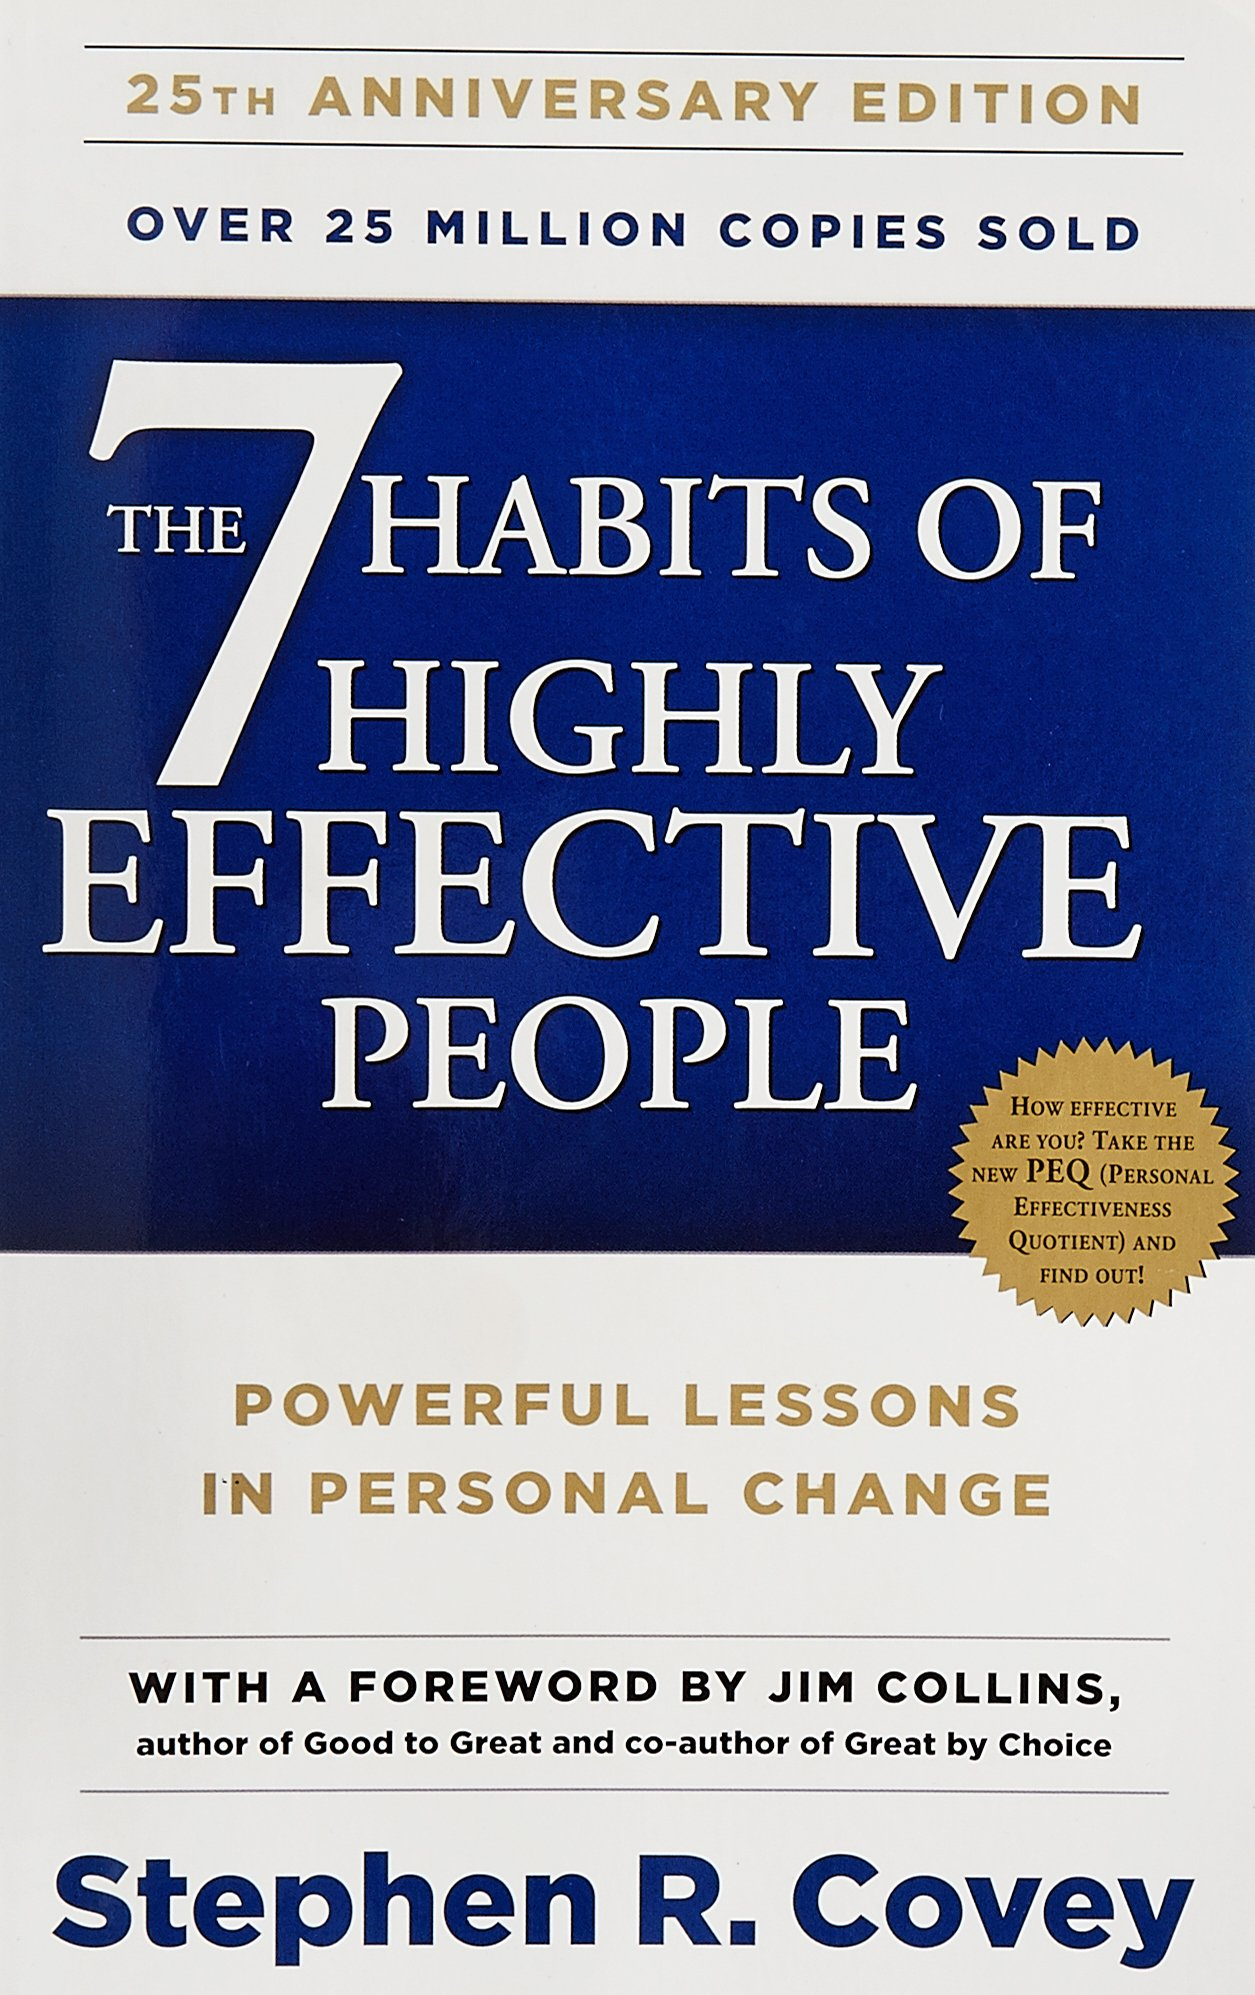 THE 7 HABITS OF HIGHLY EFFECTIVE PEOPLE: Powerful lessons in personal change  Stephen R. Covey